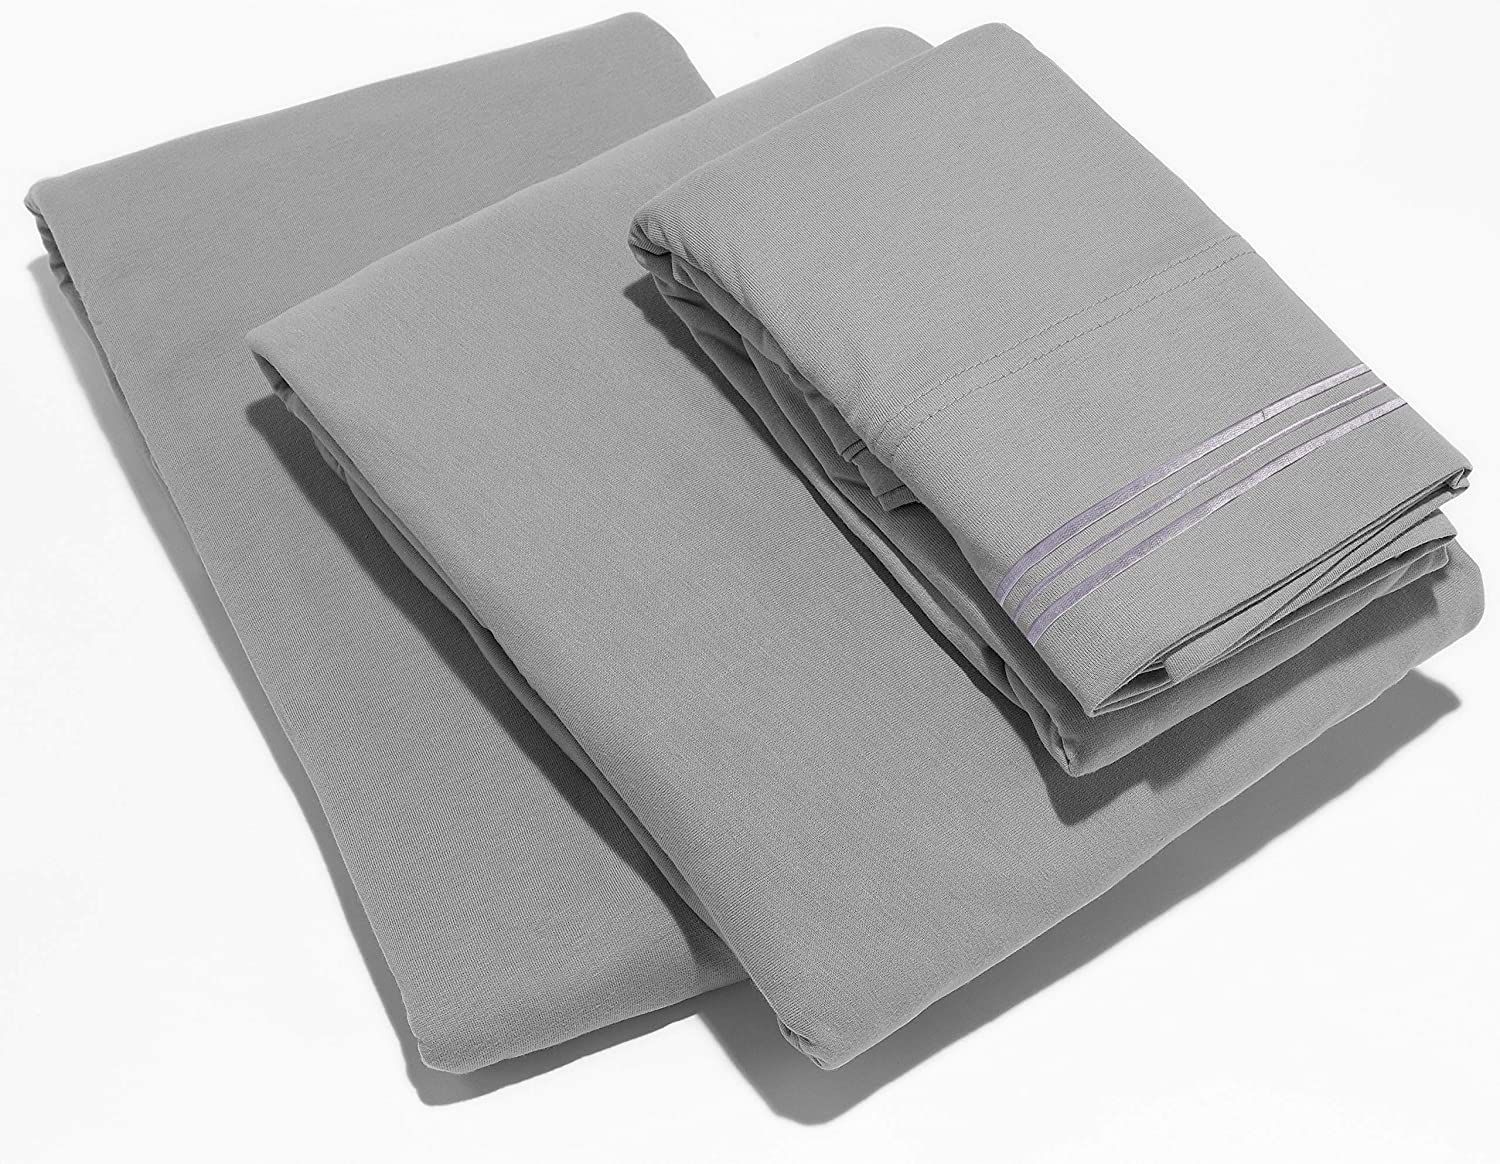 Lux Decor Collection Bedsheet Set - Brushed Microfiber 1800 Thread Count Bedding - Wrinkle, Stain and Fade Resistant - Hypoallergenic Luxury Plain Sheets- 4 Piece (Queen Size, Grey-Gray)